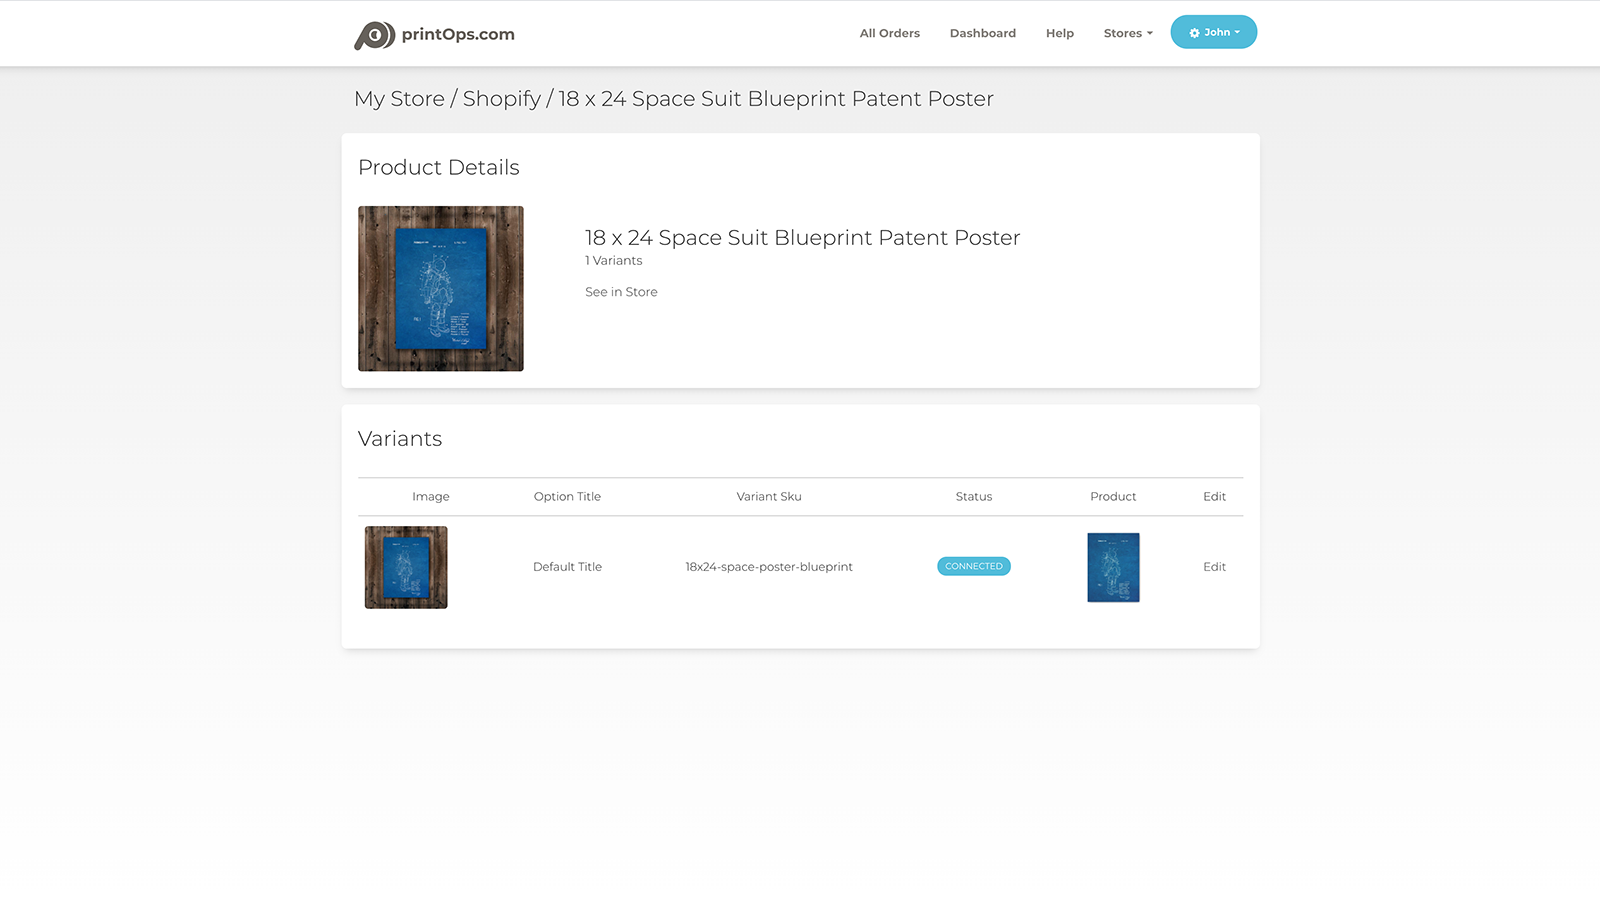 Shopify product details page